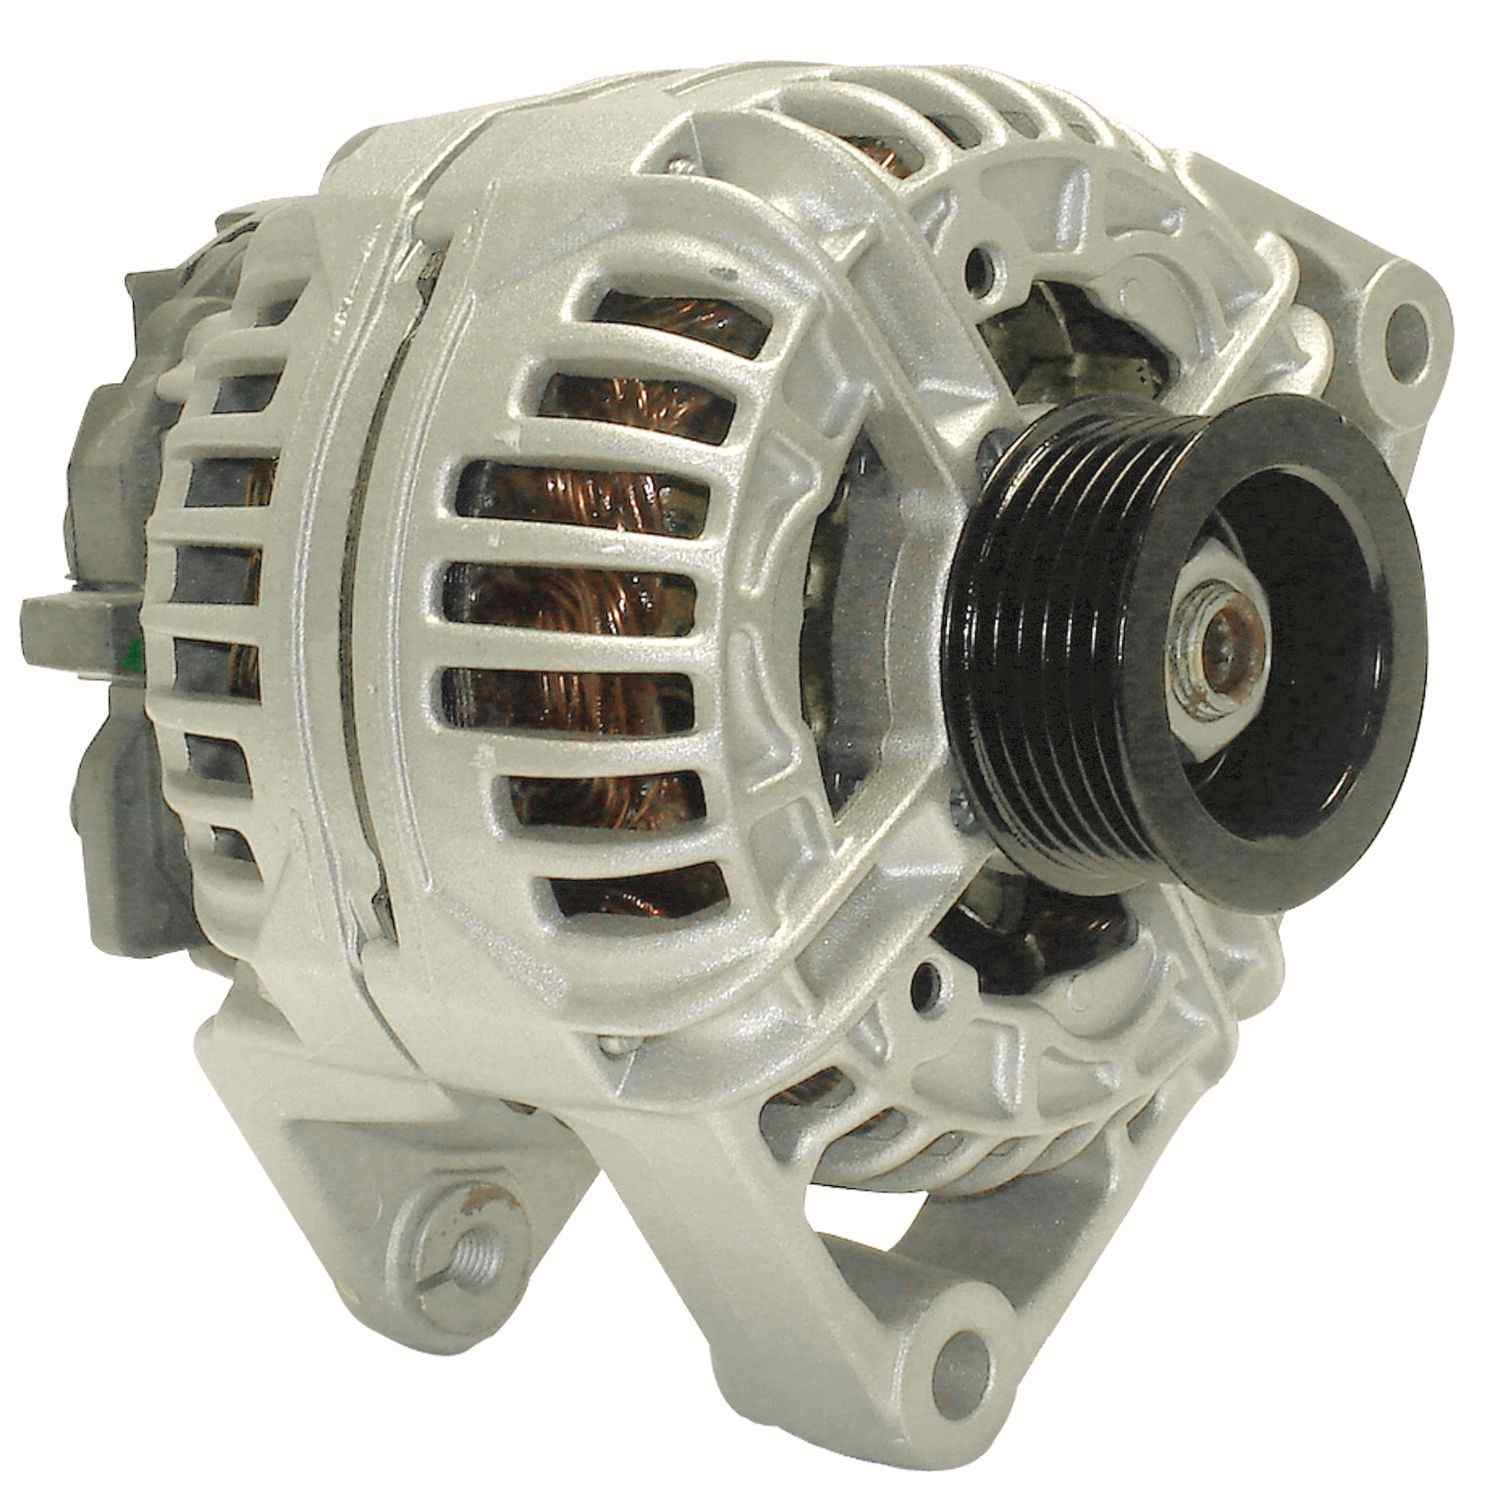 ACDELCO GOLD/PROFESSIONAL - Reman Alternator - DCC 334-1349A